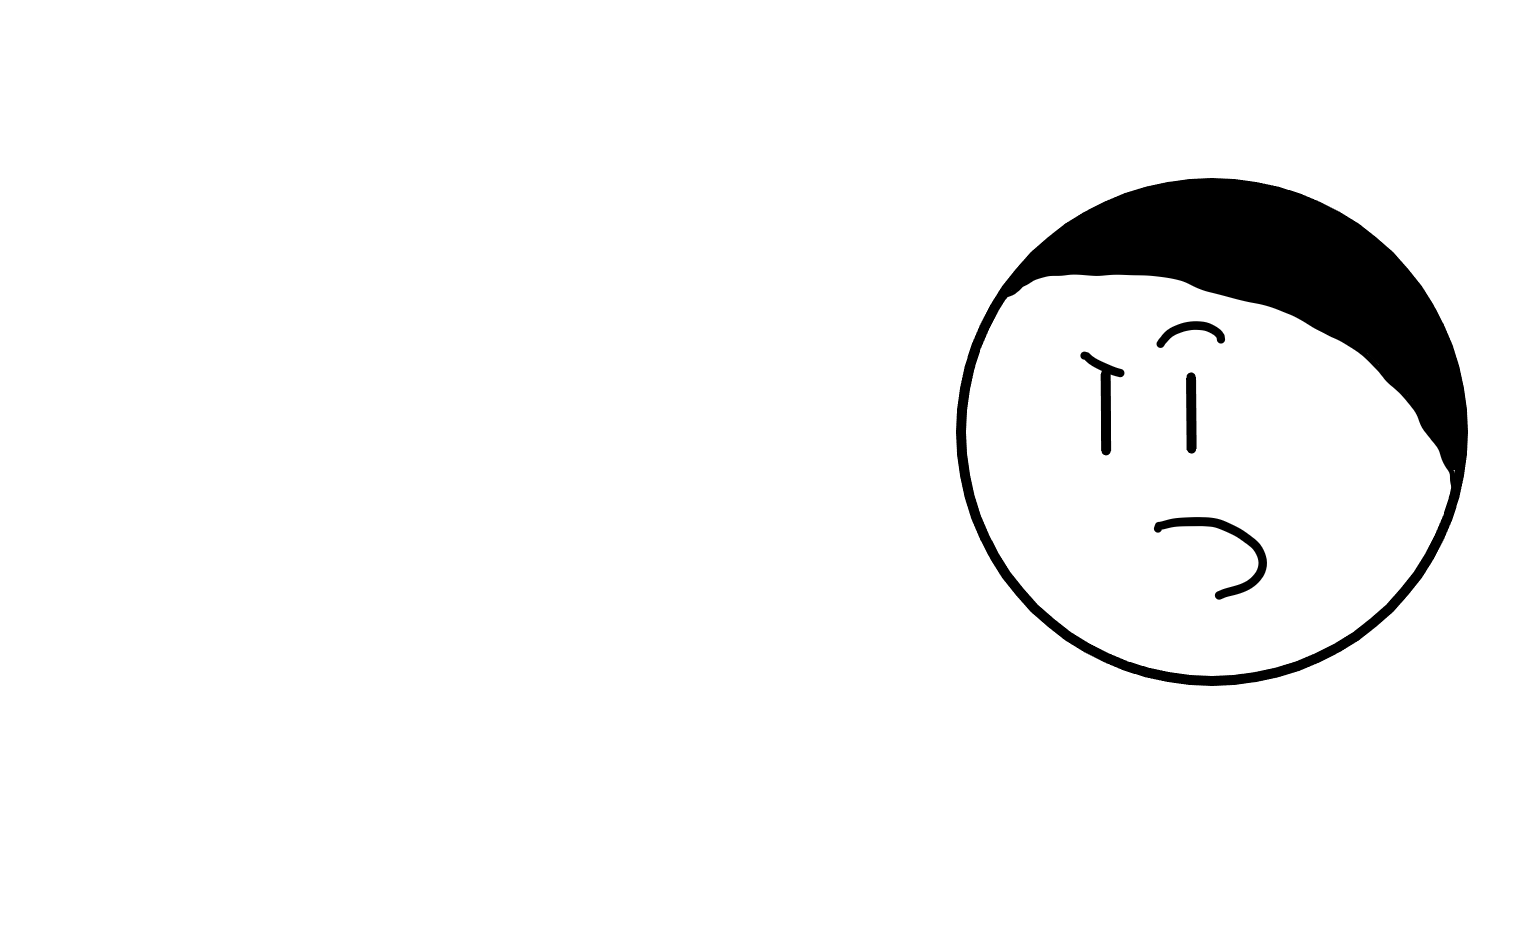 Talking face - Arched brow 2.png